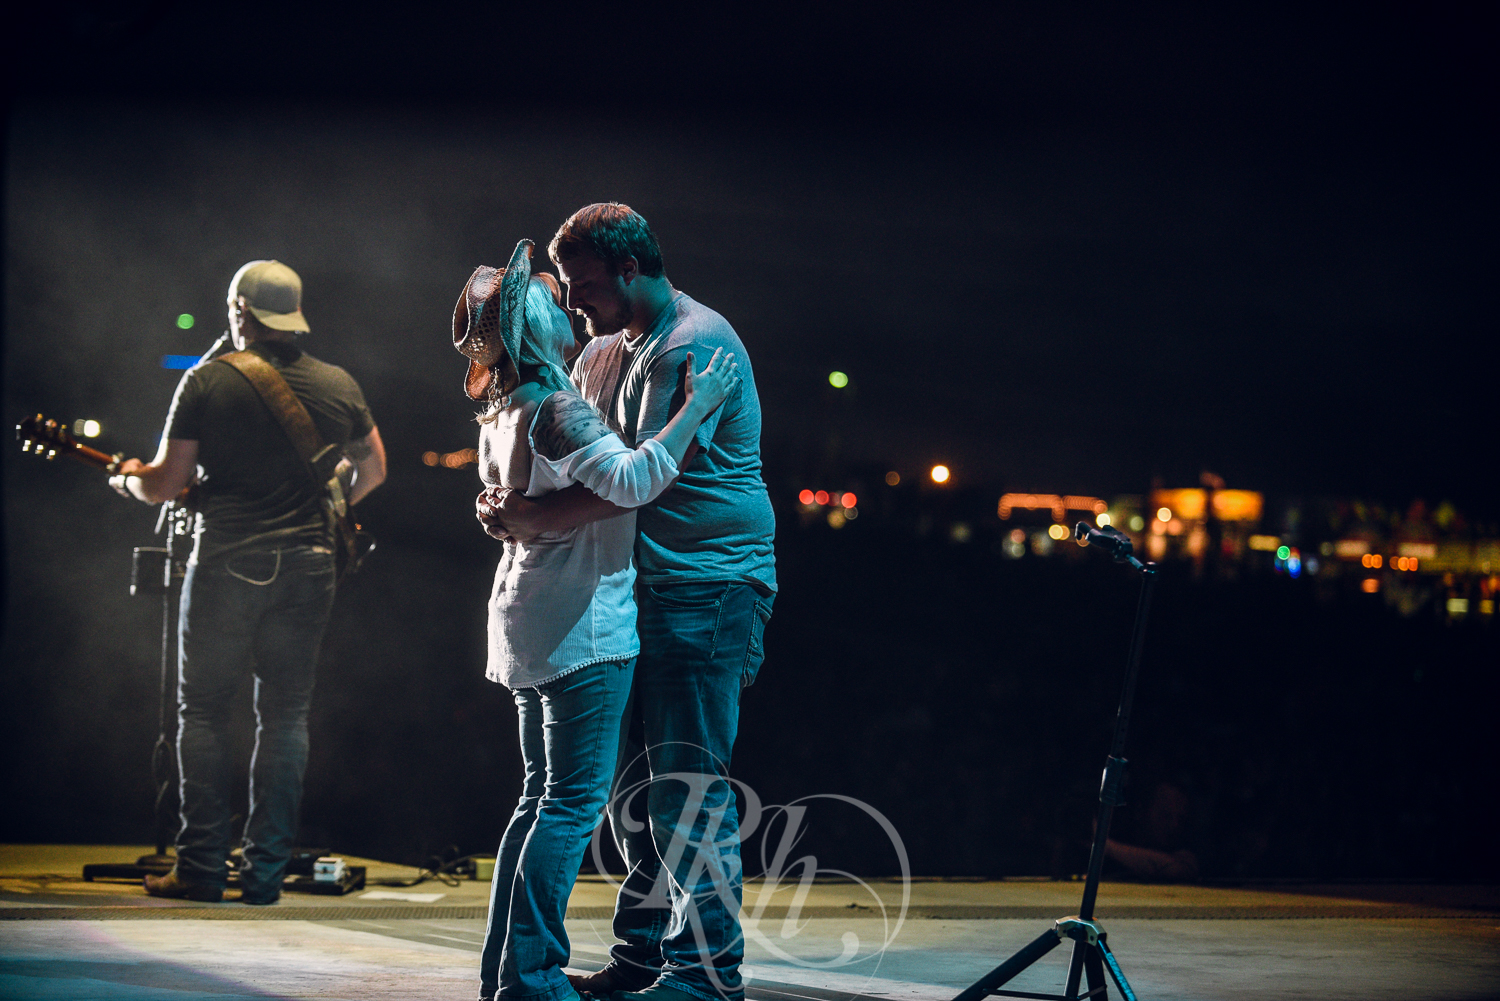 Country Fest Proposal - Minnesota Wedding Photographer - RKH Images -10.jpg